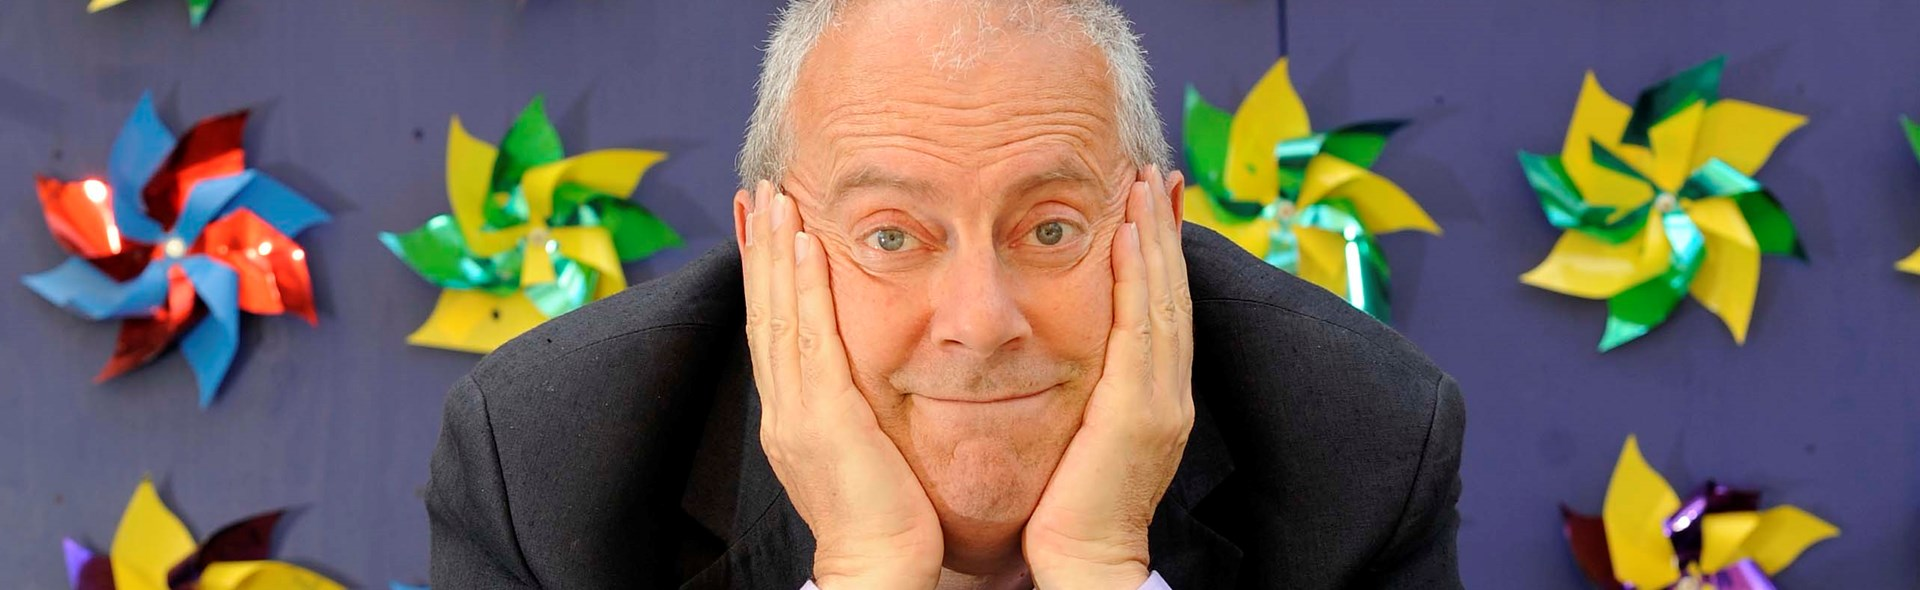 Gyles Brandreth - Odd Boy Out